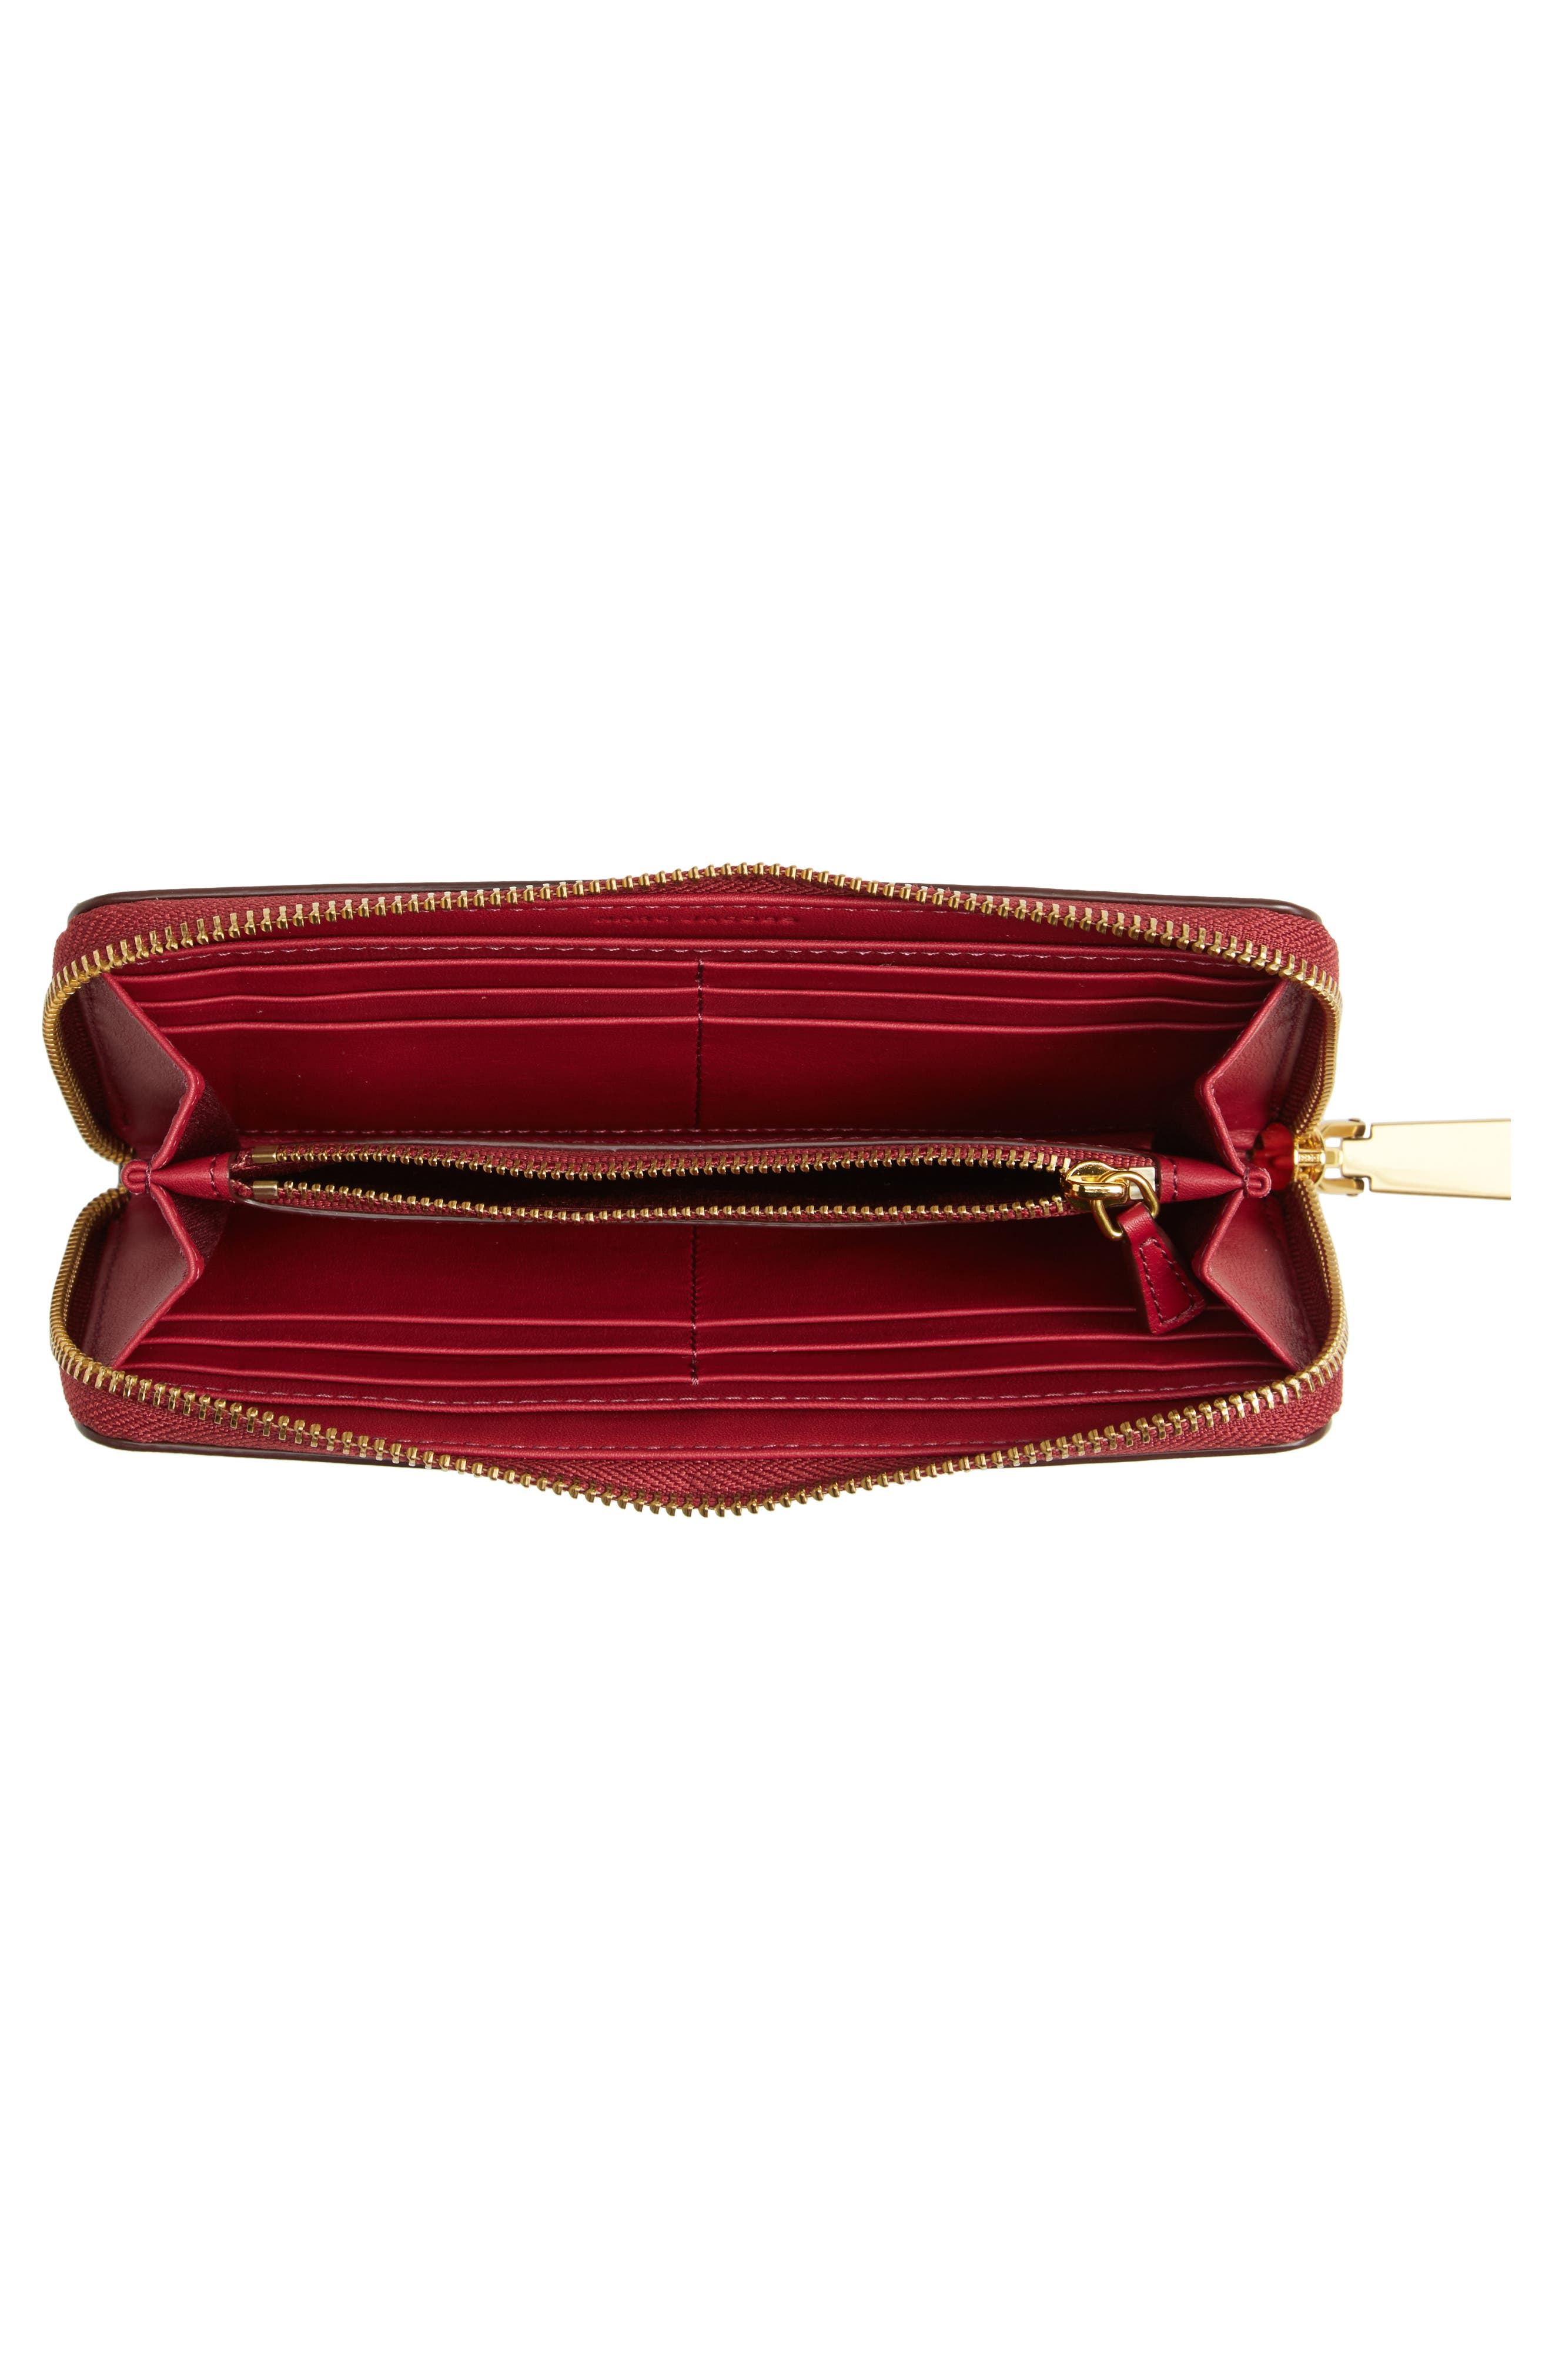 Lips Saffiano Leather Zip Around Wallet,                             Alternate thumbnail 4, color,                             653